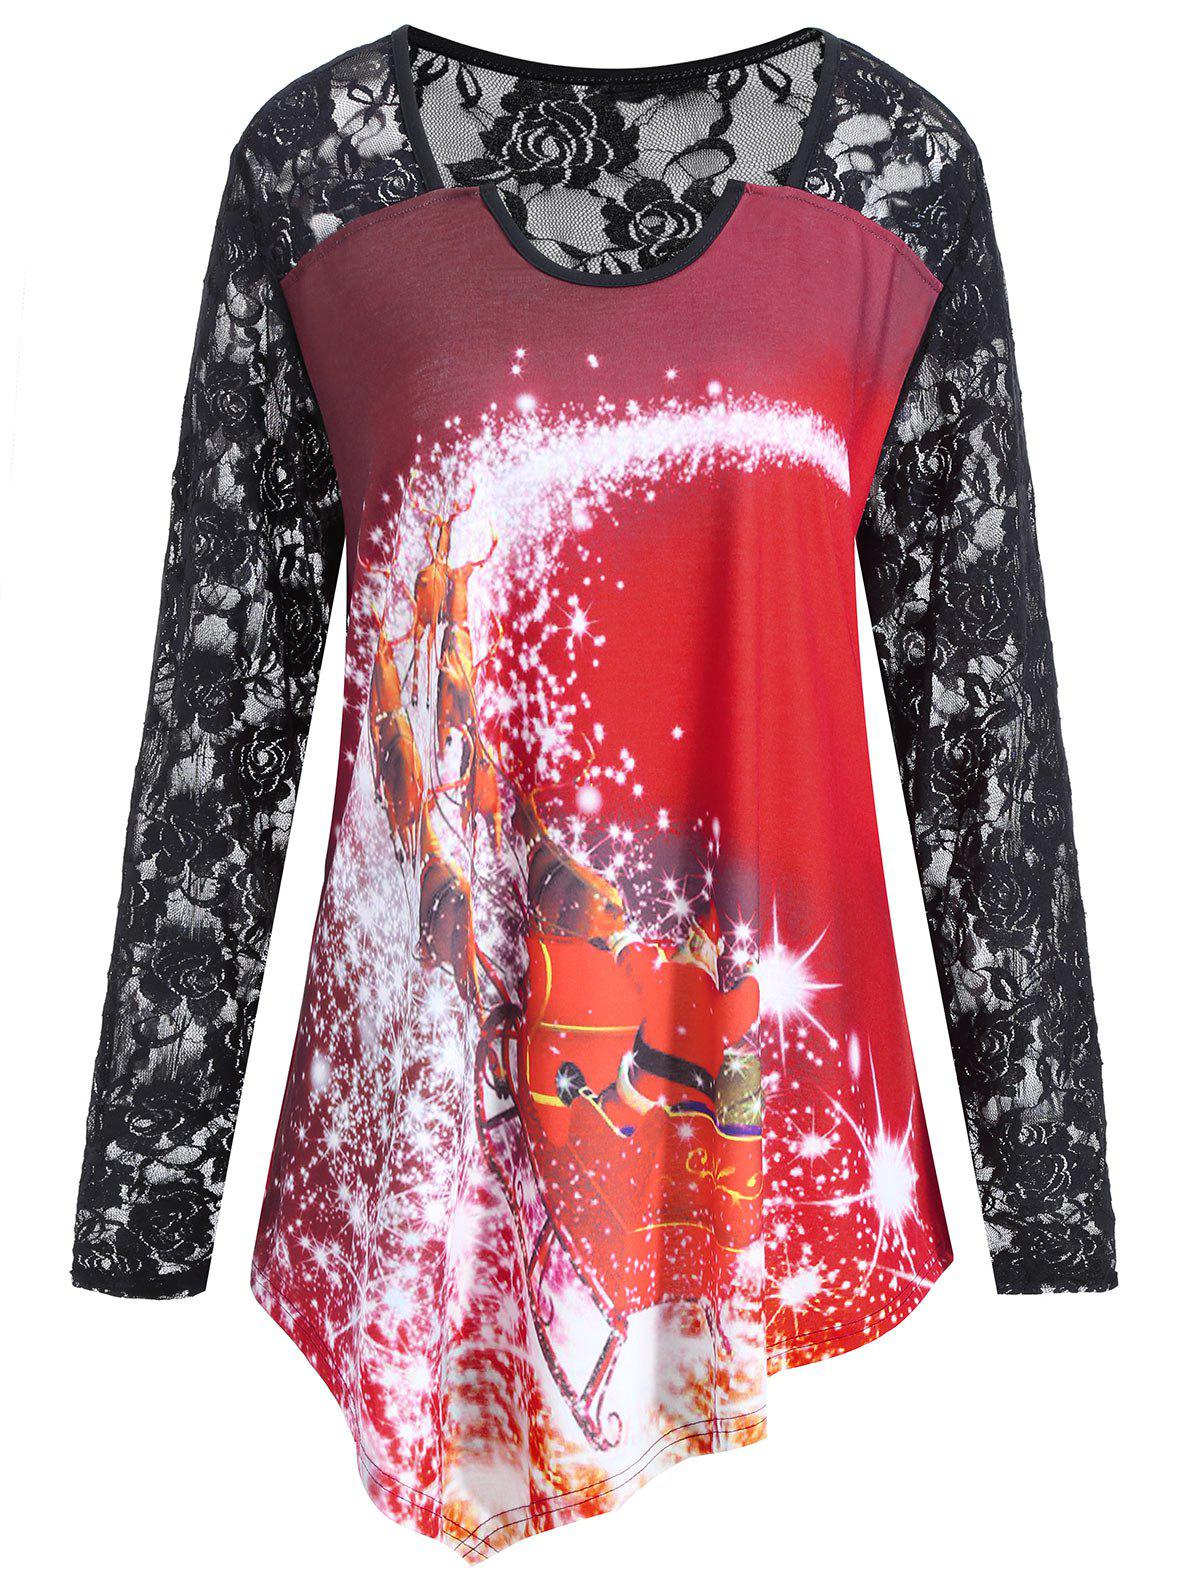 Christmas Santa Claus Plus Size Lace T-shirtWOMEN<br><br>Size: XL; Color: WINE RED; Material: Cotton,Polyester; Shirt Length: Long; Sleeve Length: Full; Collar: Round Neck; Style: Fashion; Season: Fall; Sleeve Type: Raglan Sleeve; Pattern Type: Print; Weight: 0.2400kg; Package Contents: 1 x T-shirt;